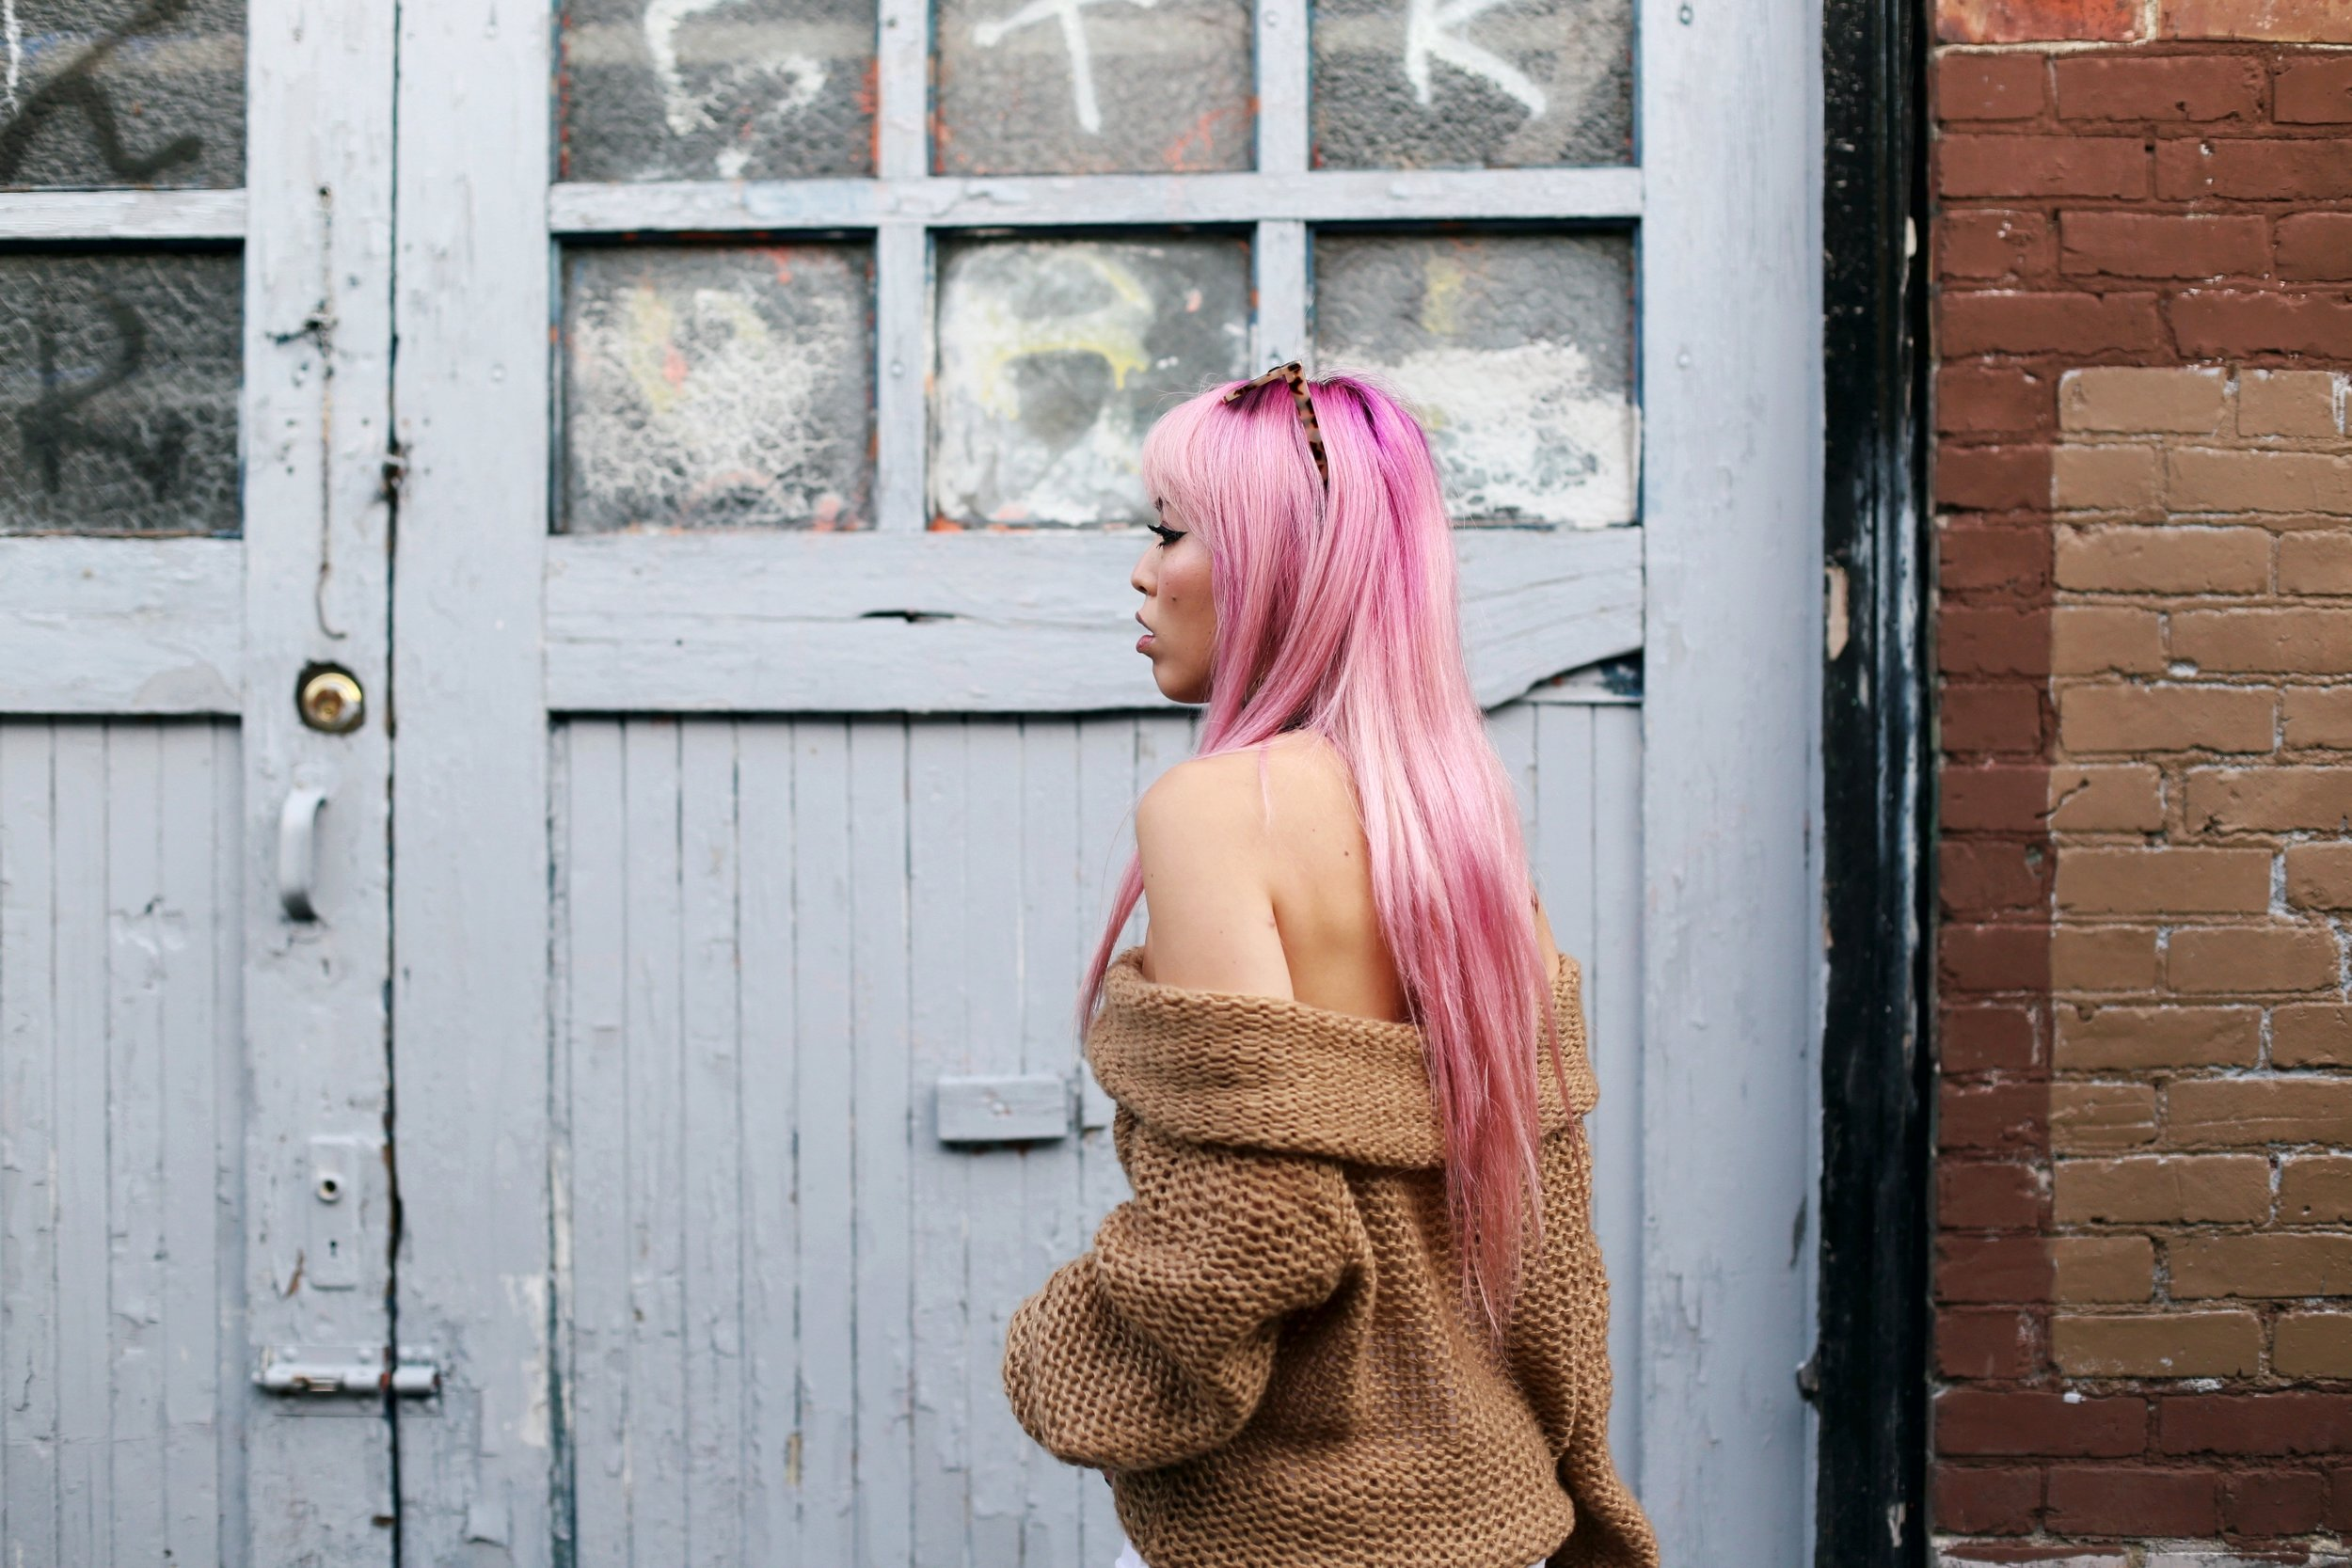 Urban Outfitters Sunglasses_Camel Off The Shoulder Sweater_TOPSHOP white jeans_ZARA Bag_ASOS Snake Skin Heels_Shop Dixi Lace Choker_Aika's Love Closet_Seattle Fashion Blogger_Japanese_Pink Hair_Colored Hair 20